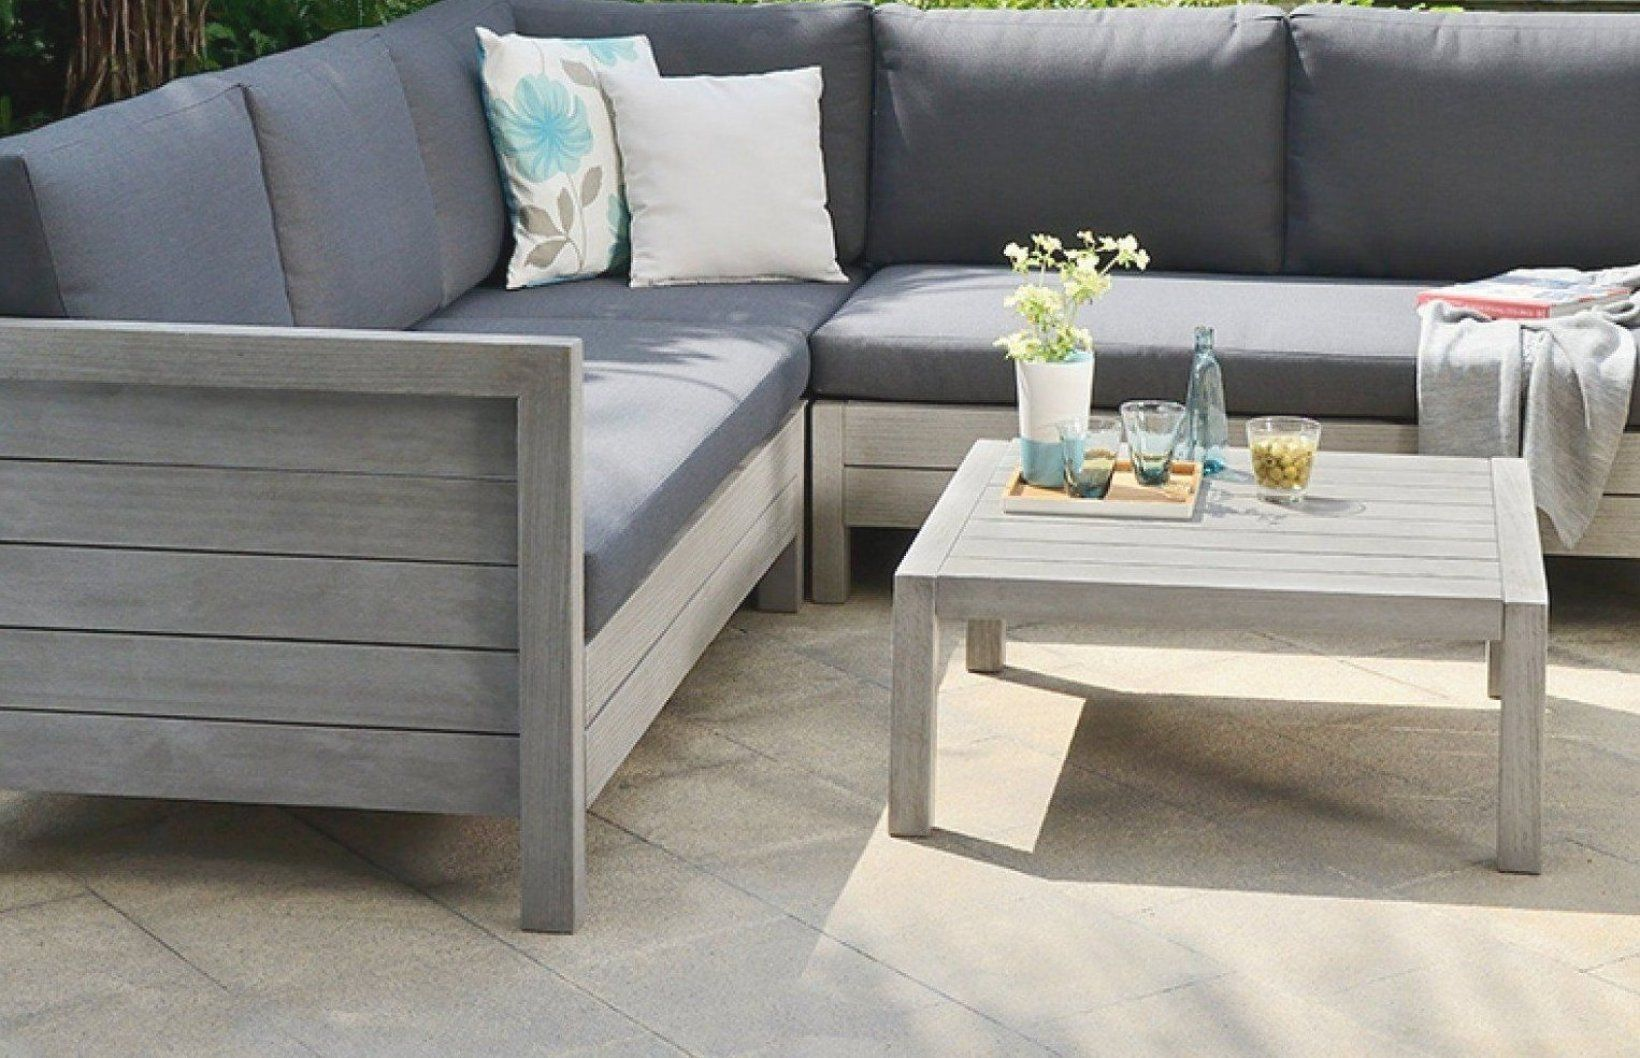 Discover The Uk S Most Unique Range Of Designer Garden Sofa Sets In Wood Teak And Rattan With Free De In 2020 Gray Patio Furniture Corner Sofa Outdoor Garden Sofa Set